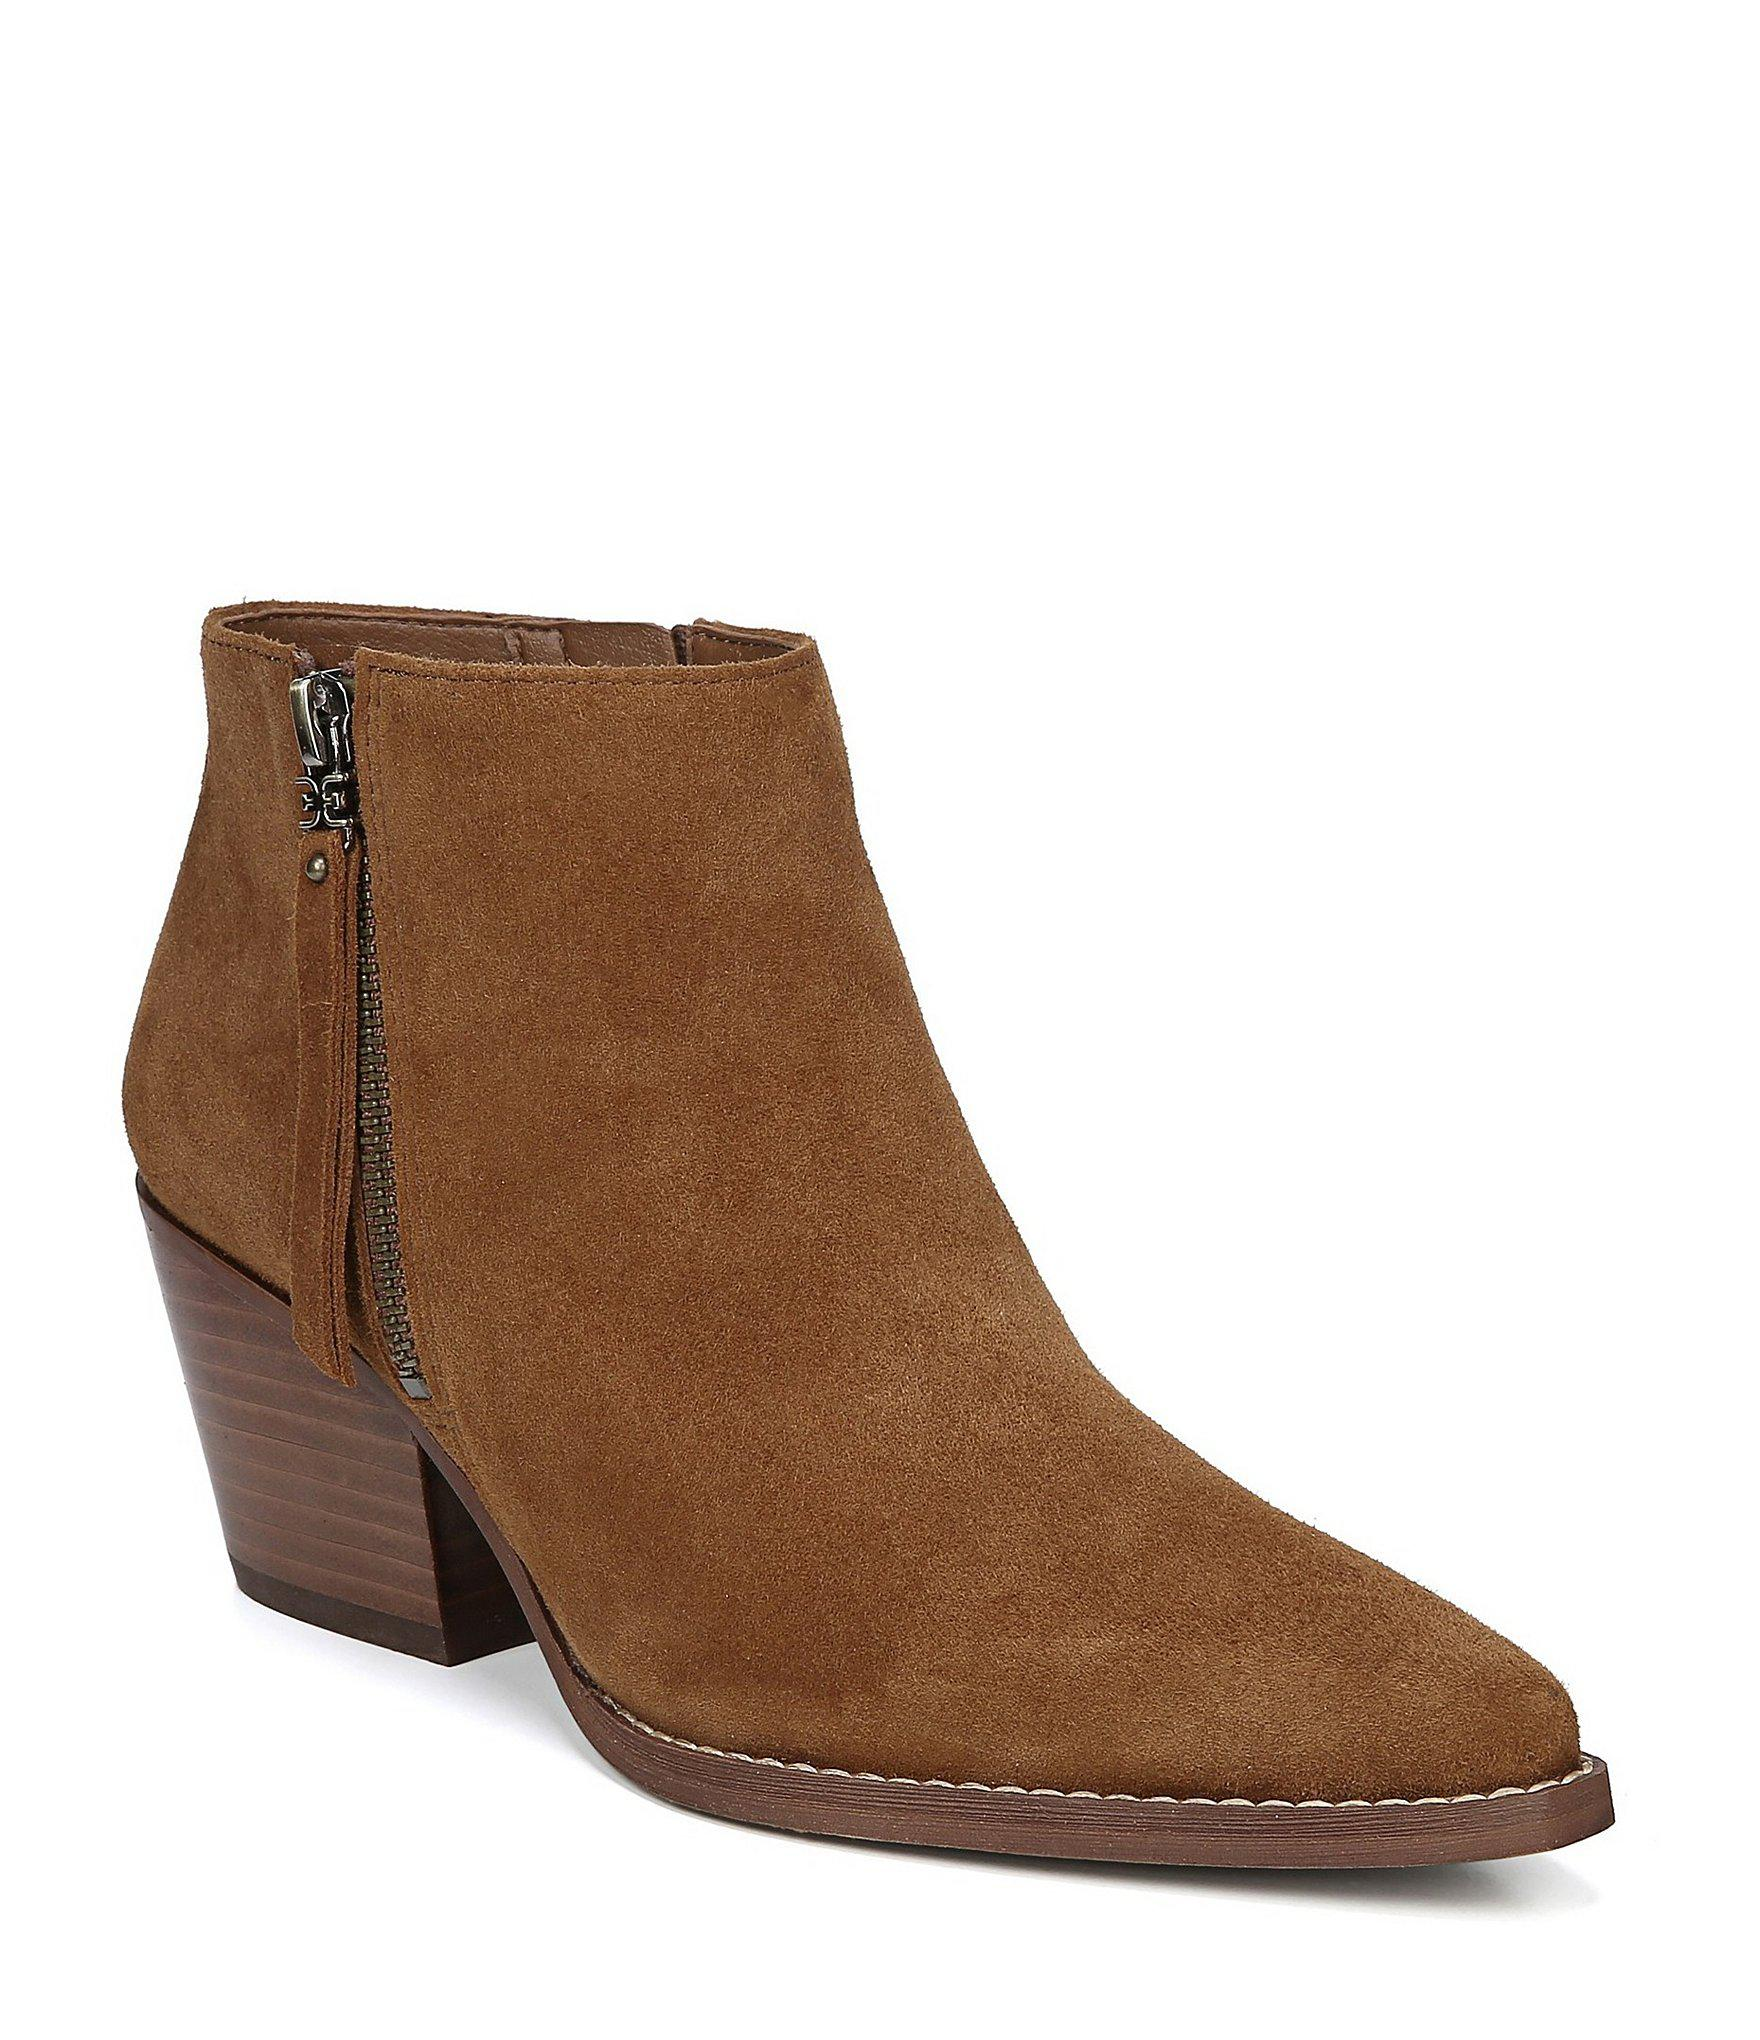 1cb5af1f5 Lyst - Sam Edelman Walden Suede Block Heel Booties in Brown